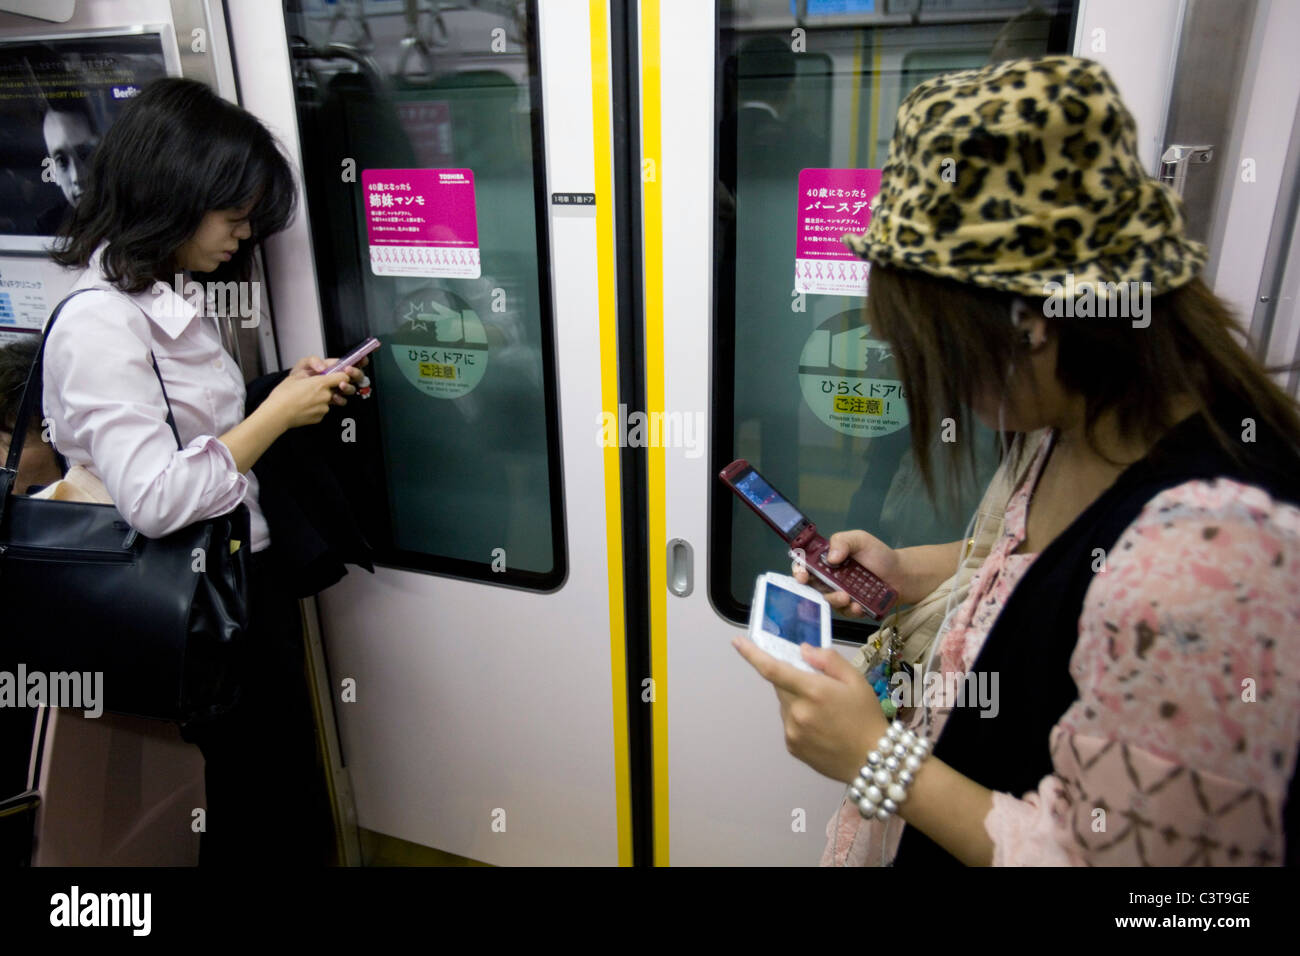 Two Japanese women using mobile phones, Tokyo, Japan Stock Photo